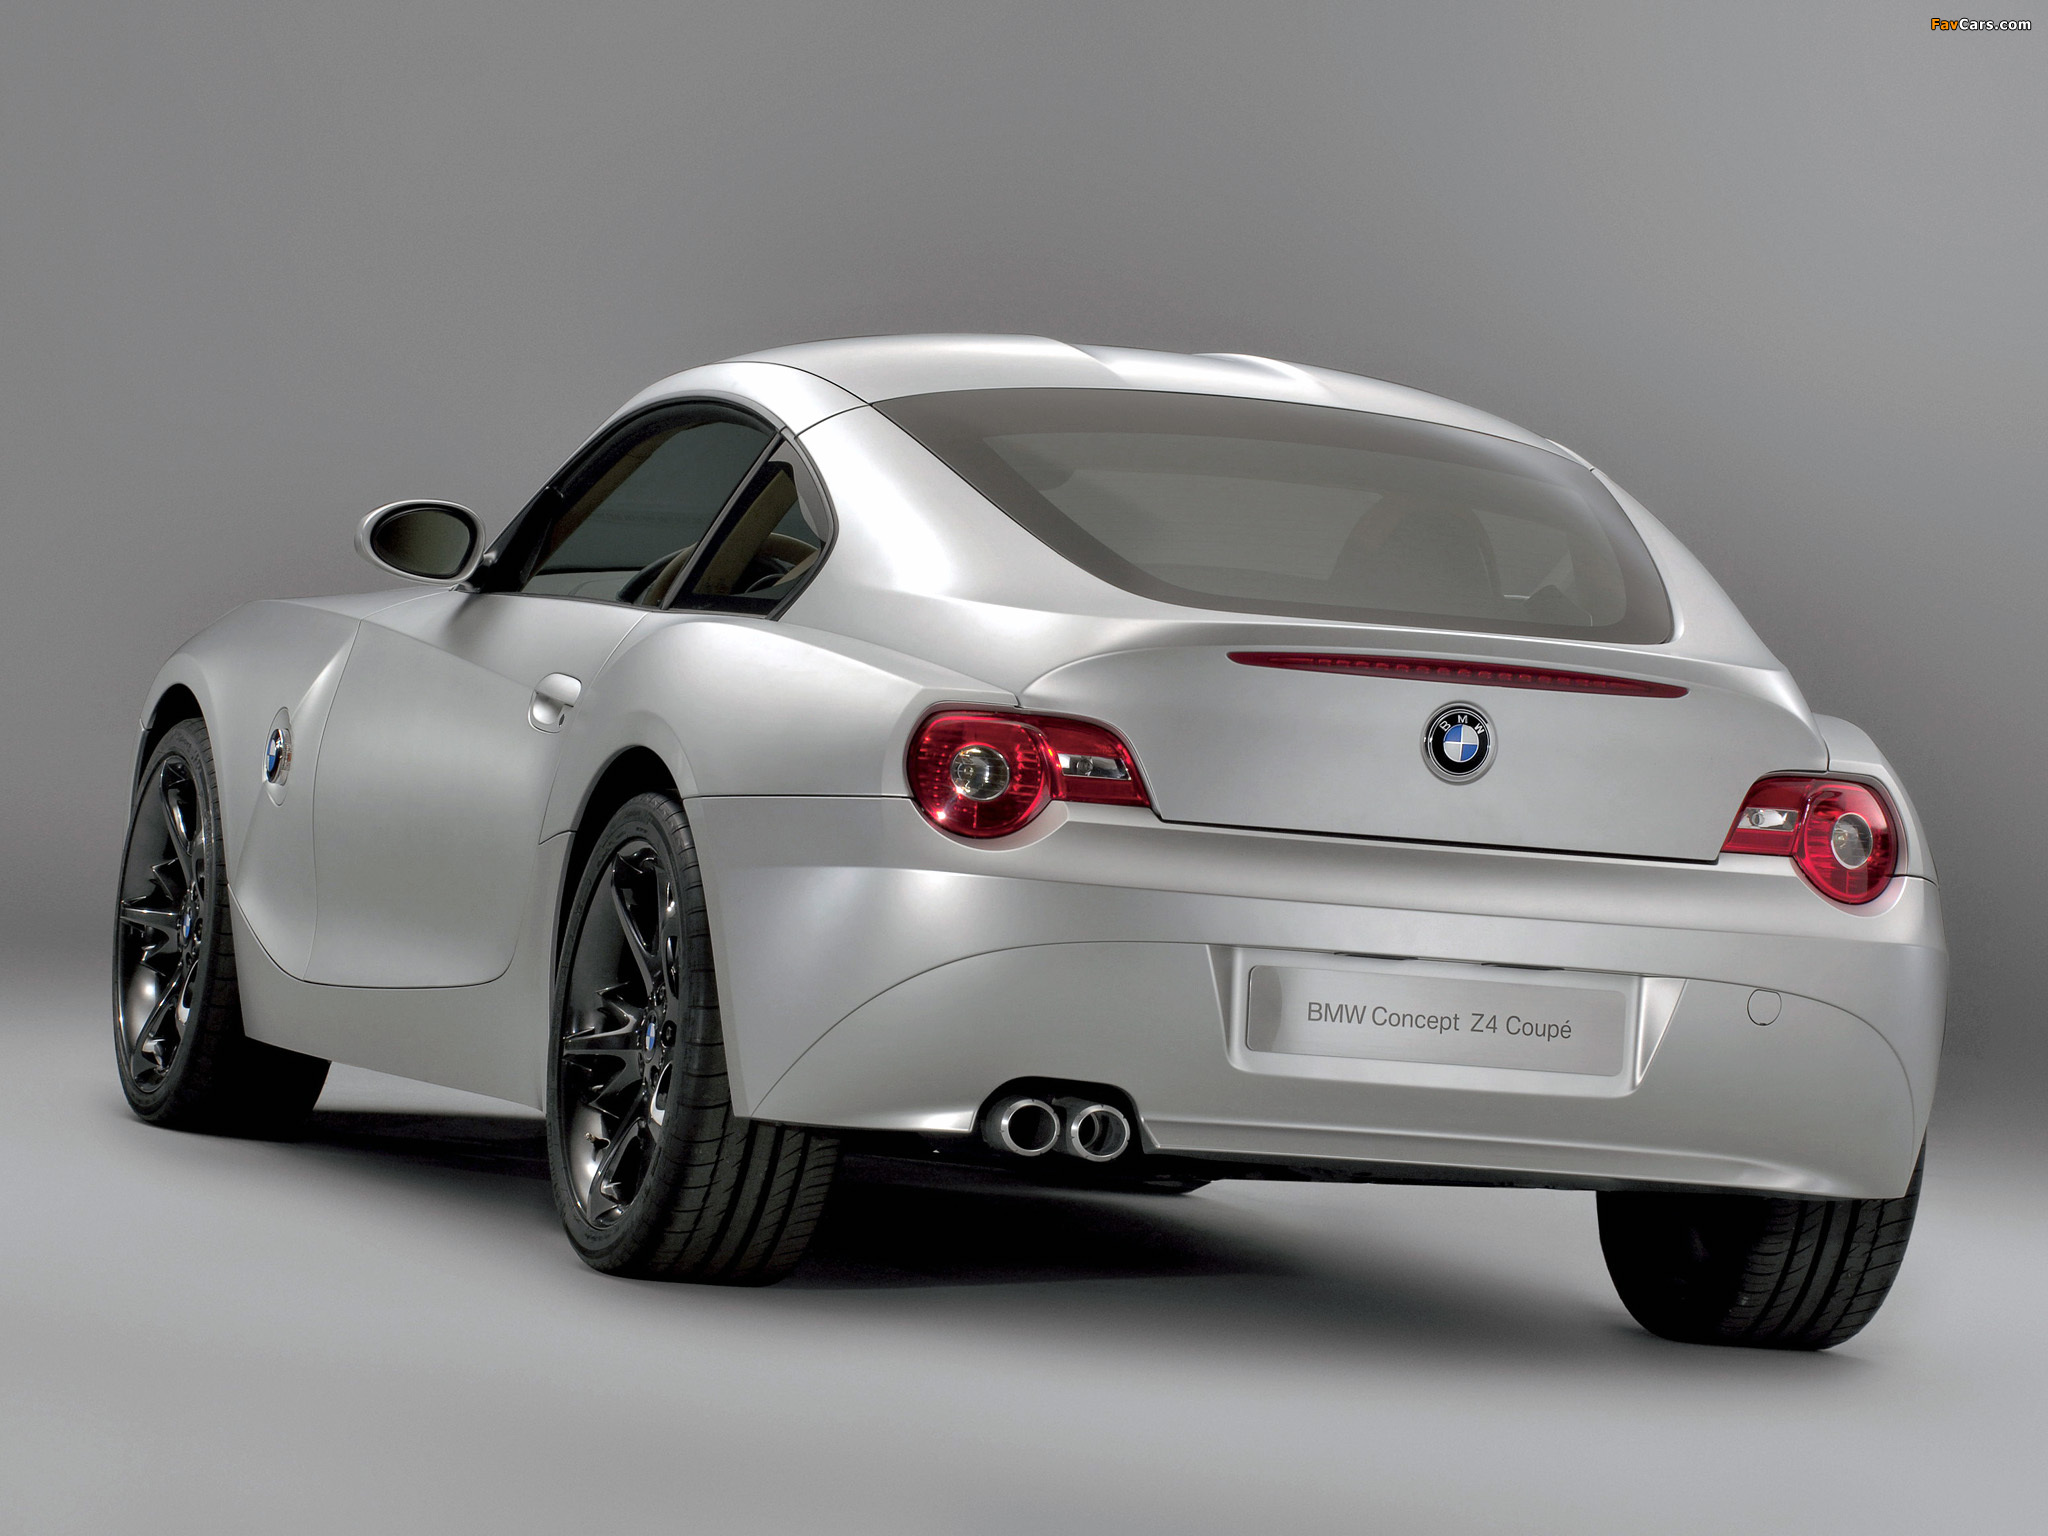 BMW Z4 Coupe Concept (E85) 2005 wallpapers (2048x1536)